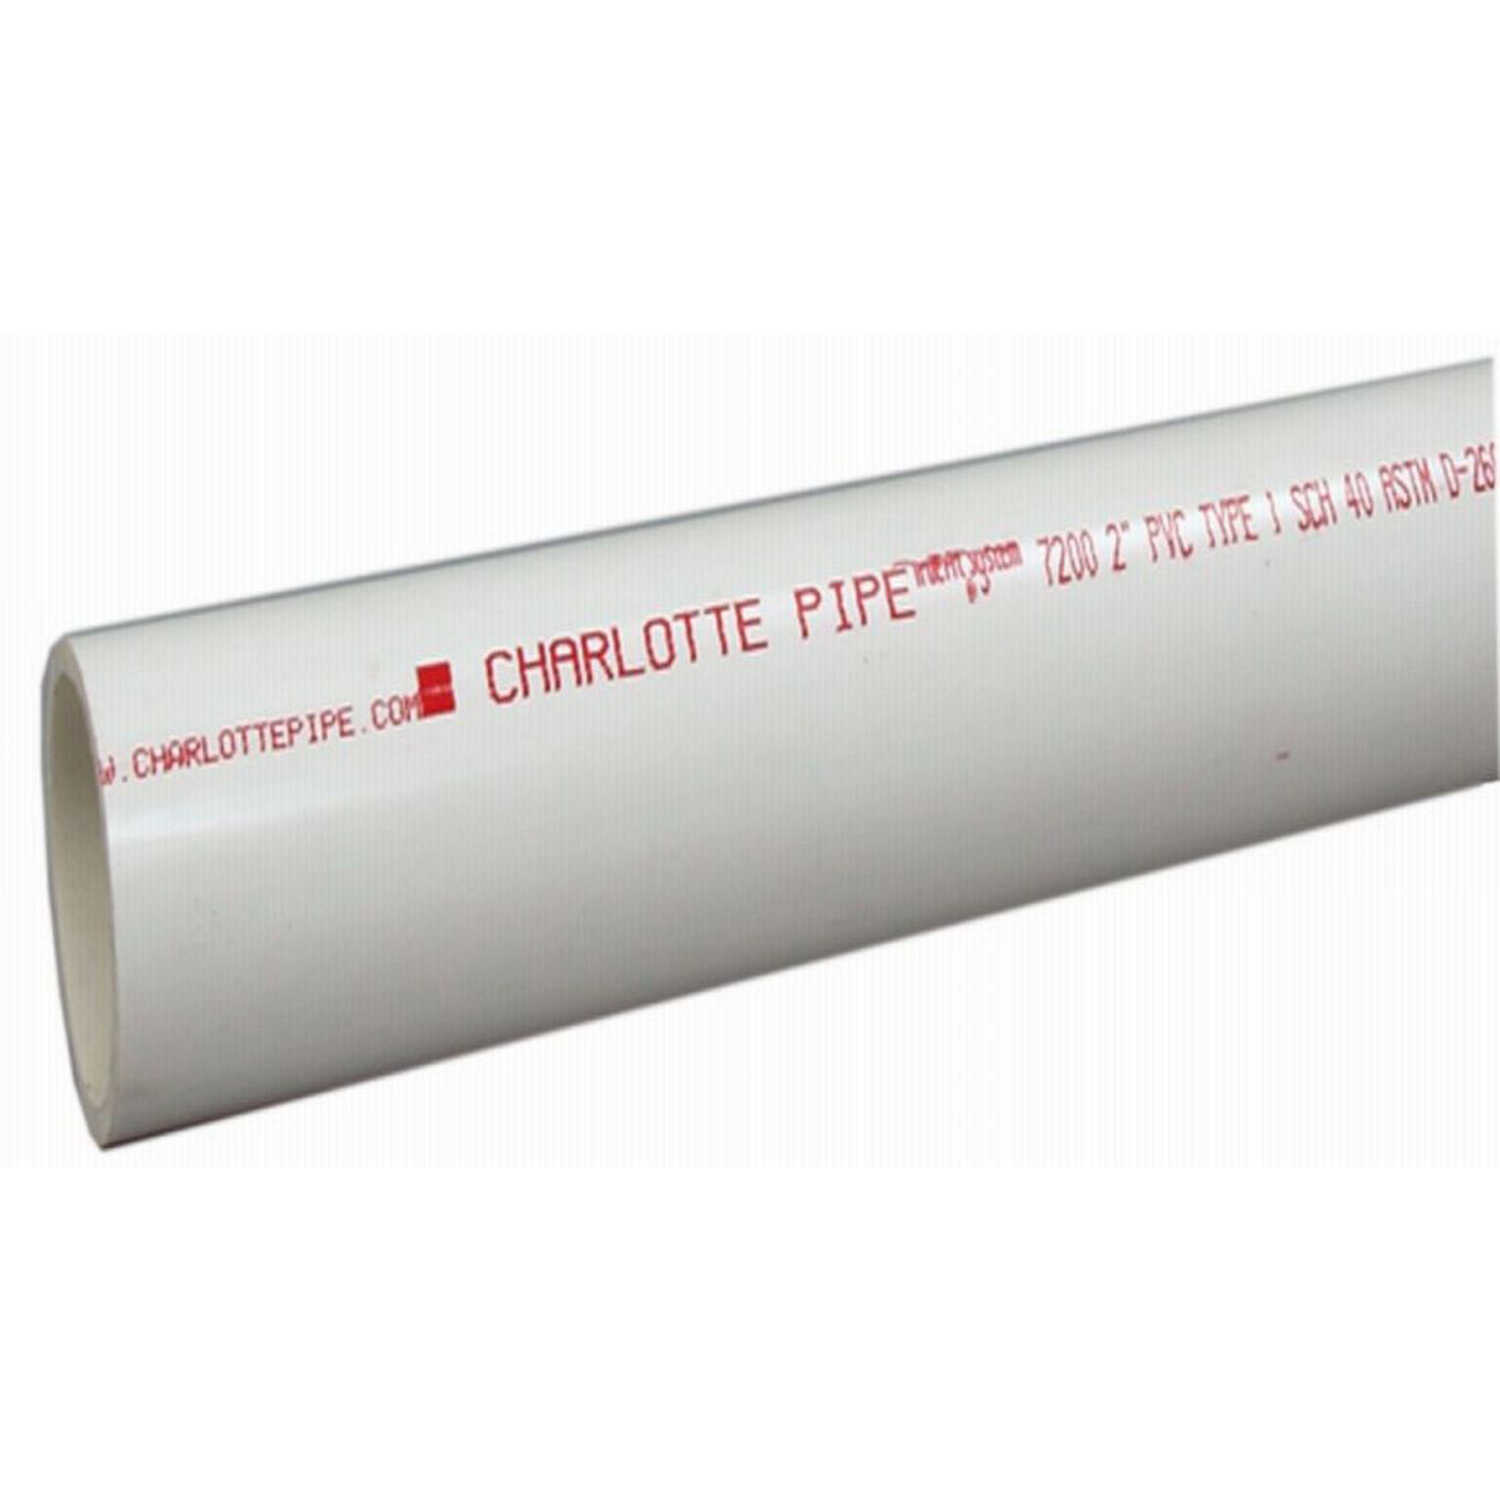 Charlotte Pipe  Pipe  1-1/2 in. Dia. x 5 ft. L Plain End  Schedule 40  330 psi